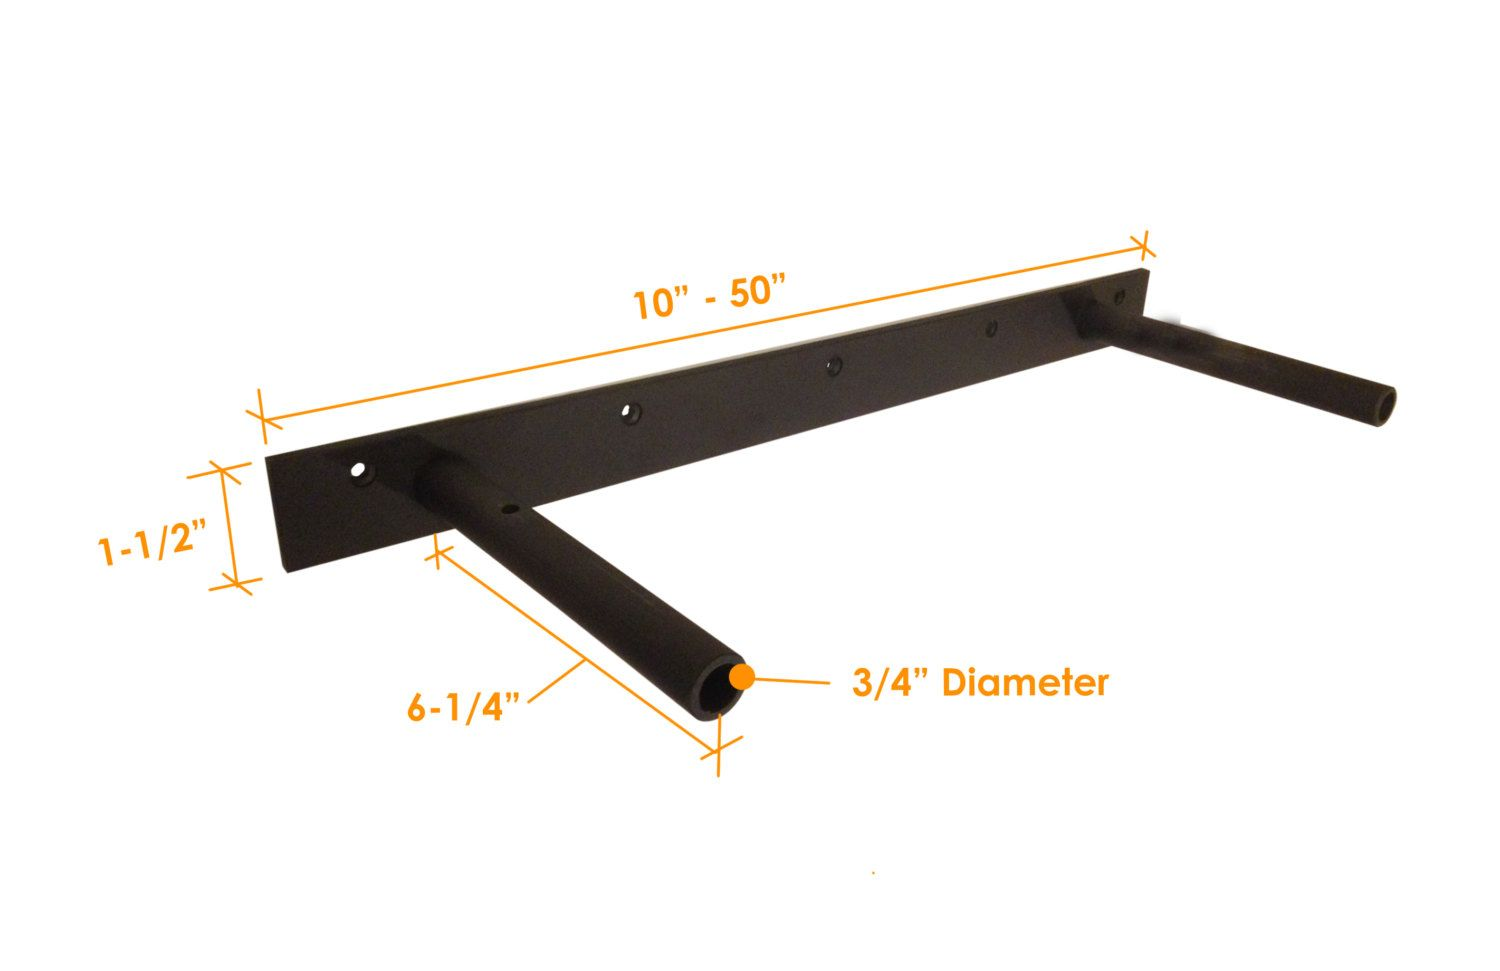 floating shelf brackets steel heavy duty from fitting hidden bracket silicatestudio maple wall drywall shelves inch media cabinet cork liner stick painting without nails box coat